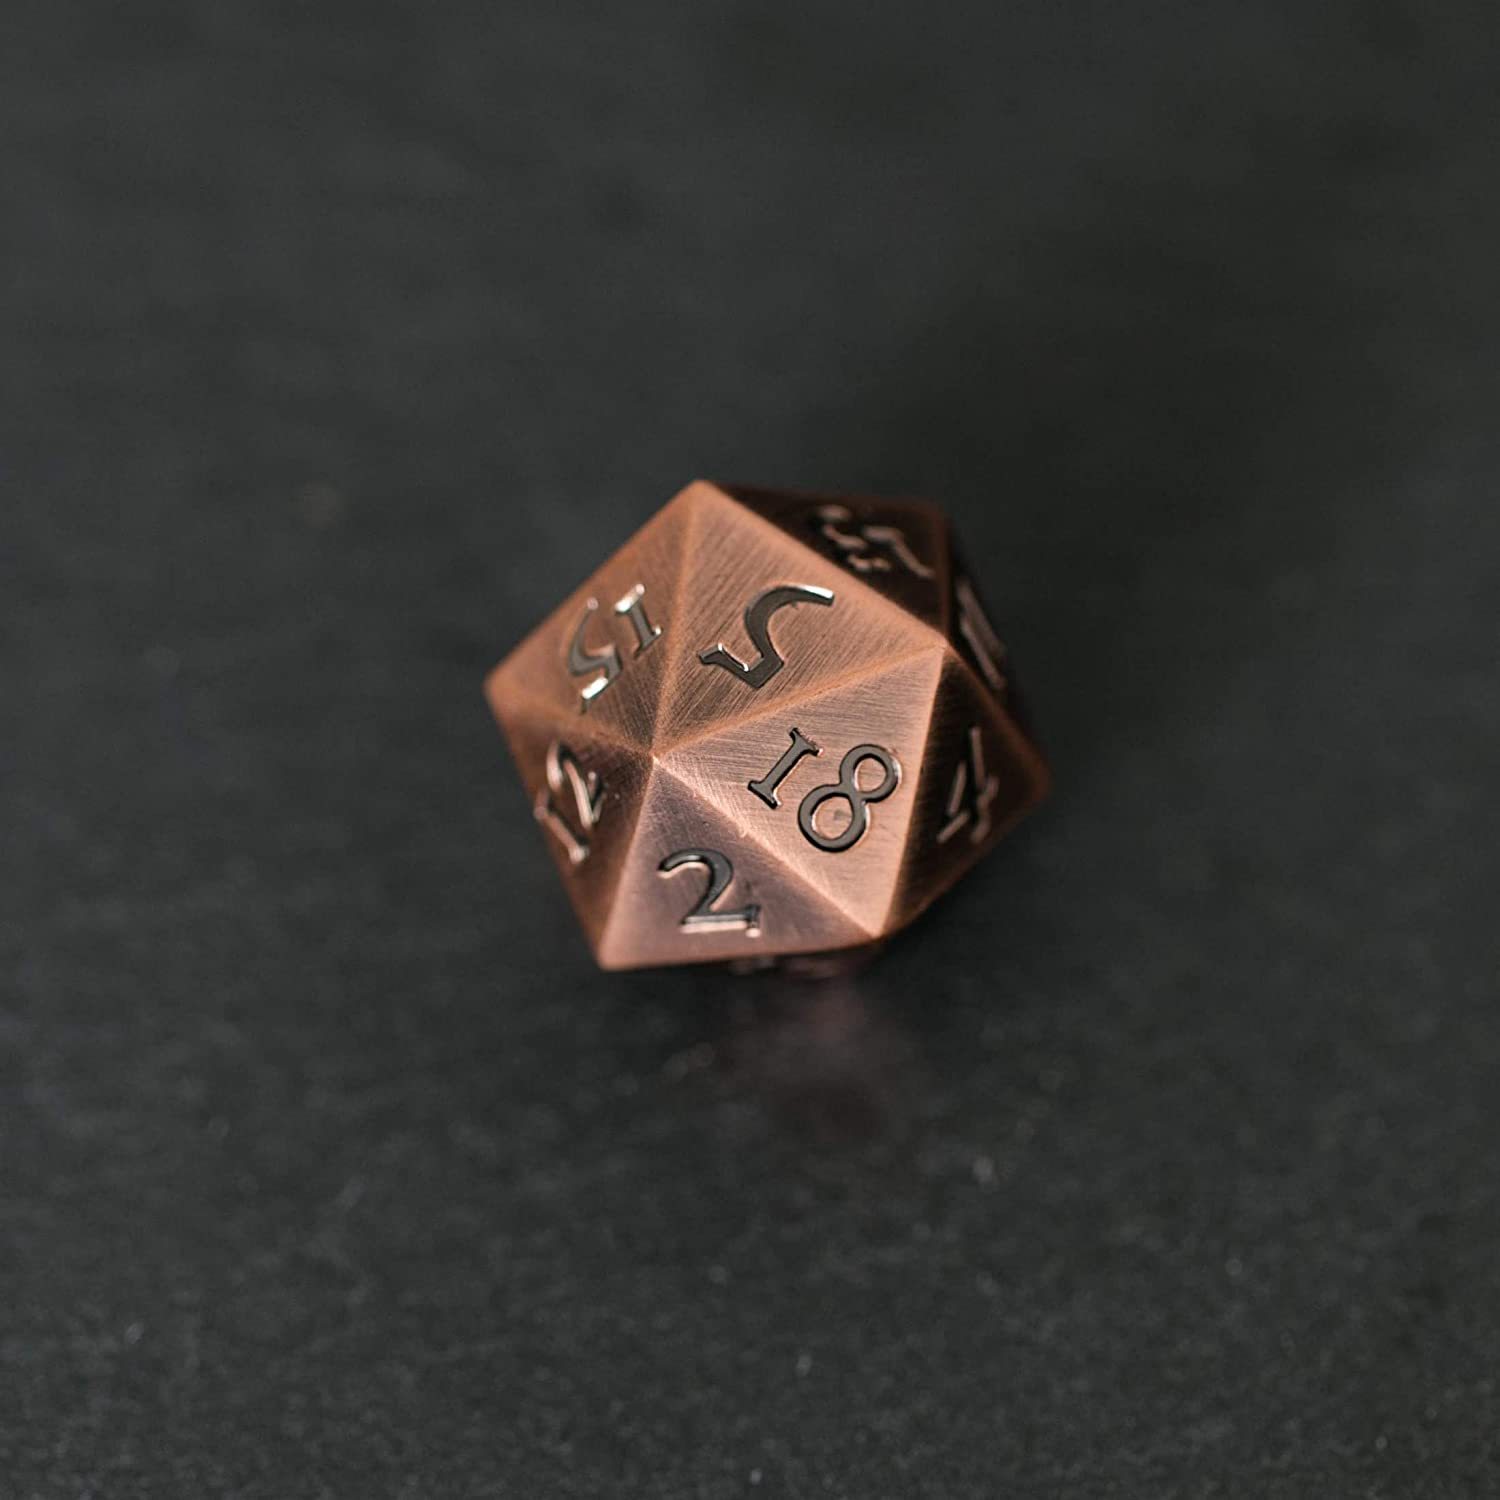 KakapopoTCG Extra Large Solid Metal D20 Standard Dice in Copper Bronze Finish 20 face Extra Heavy DND Dice Pathfinder Dungeons and Dragons